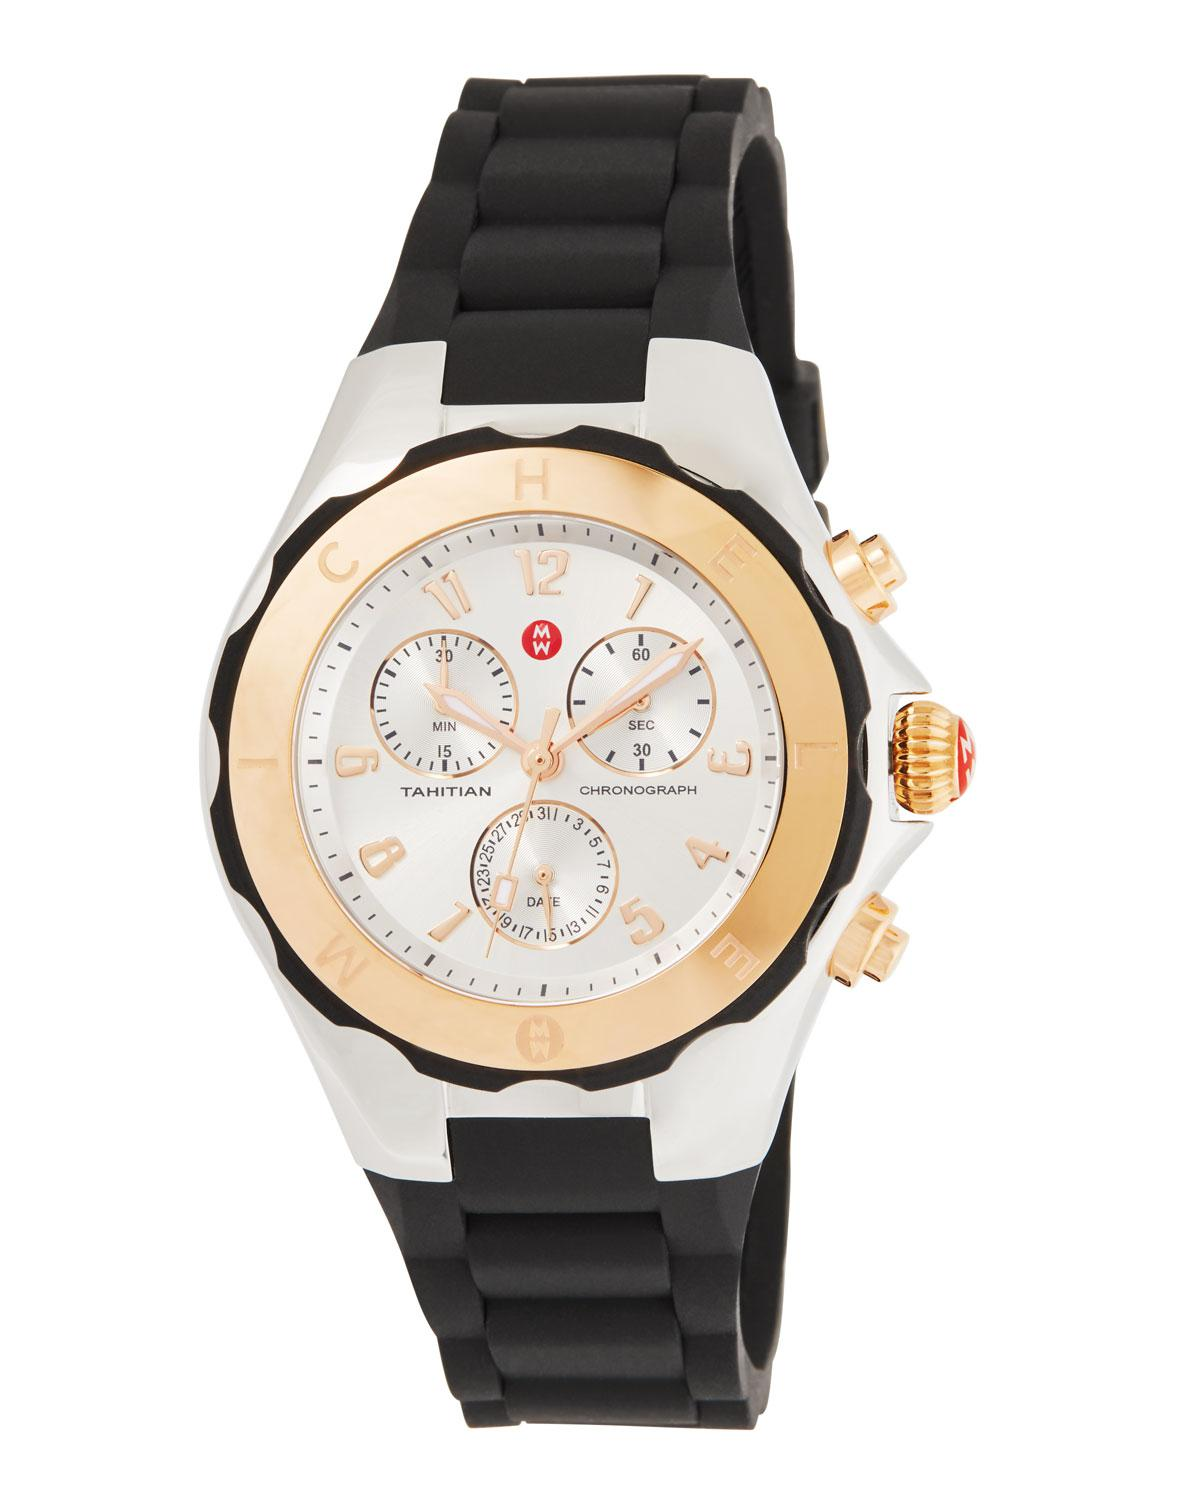 9307a2407 Michele 40mm Tahitian Jelly Bean Chronograph Watch W/ Silicone Strap ...